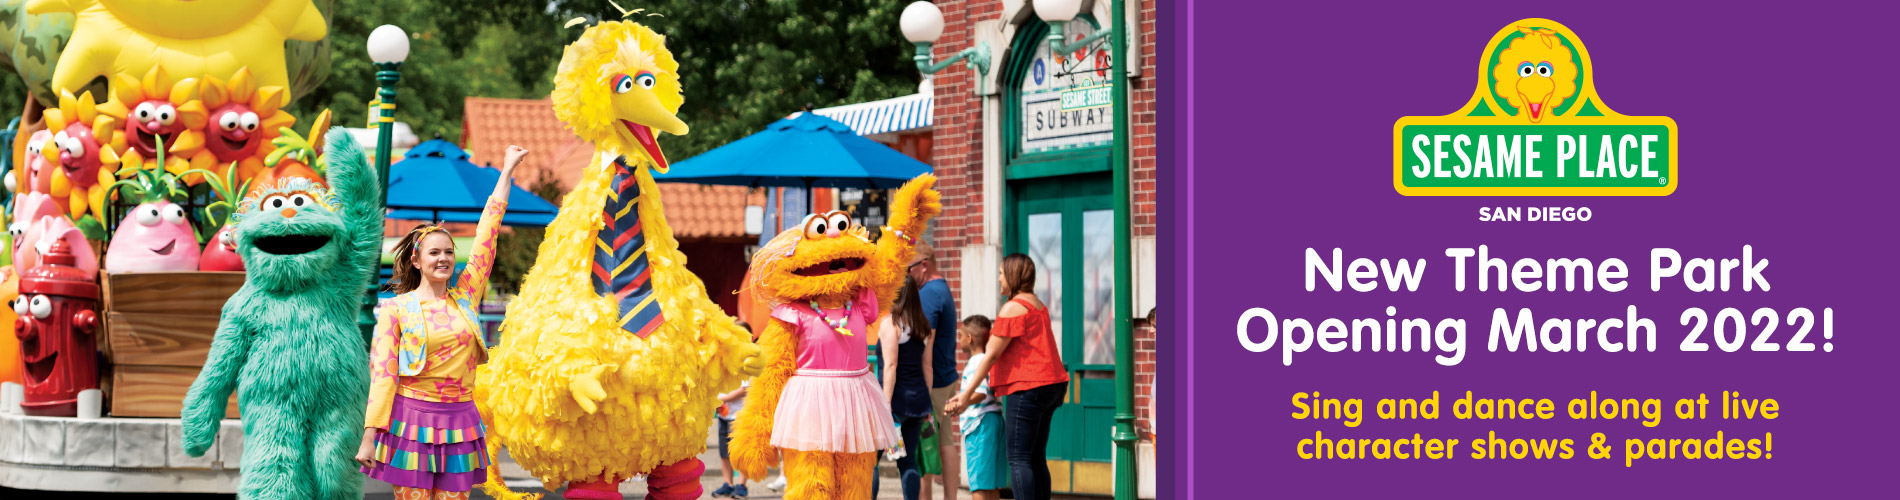 Sesame Place San Diego Opening March 2022